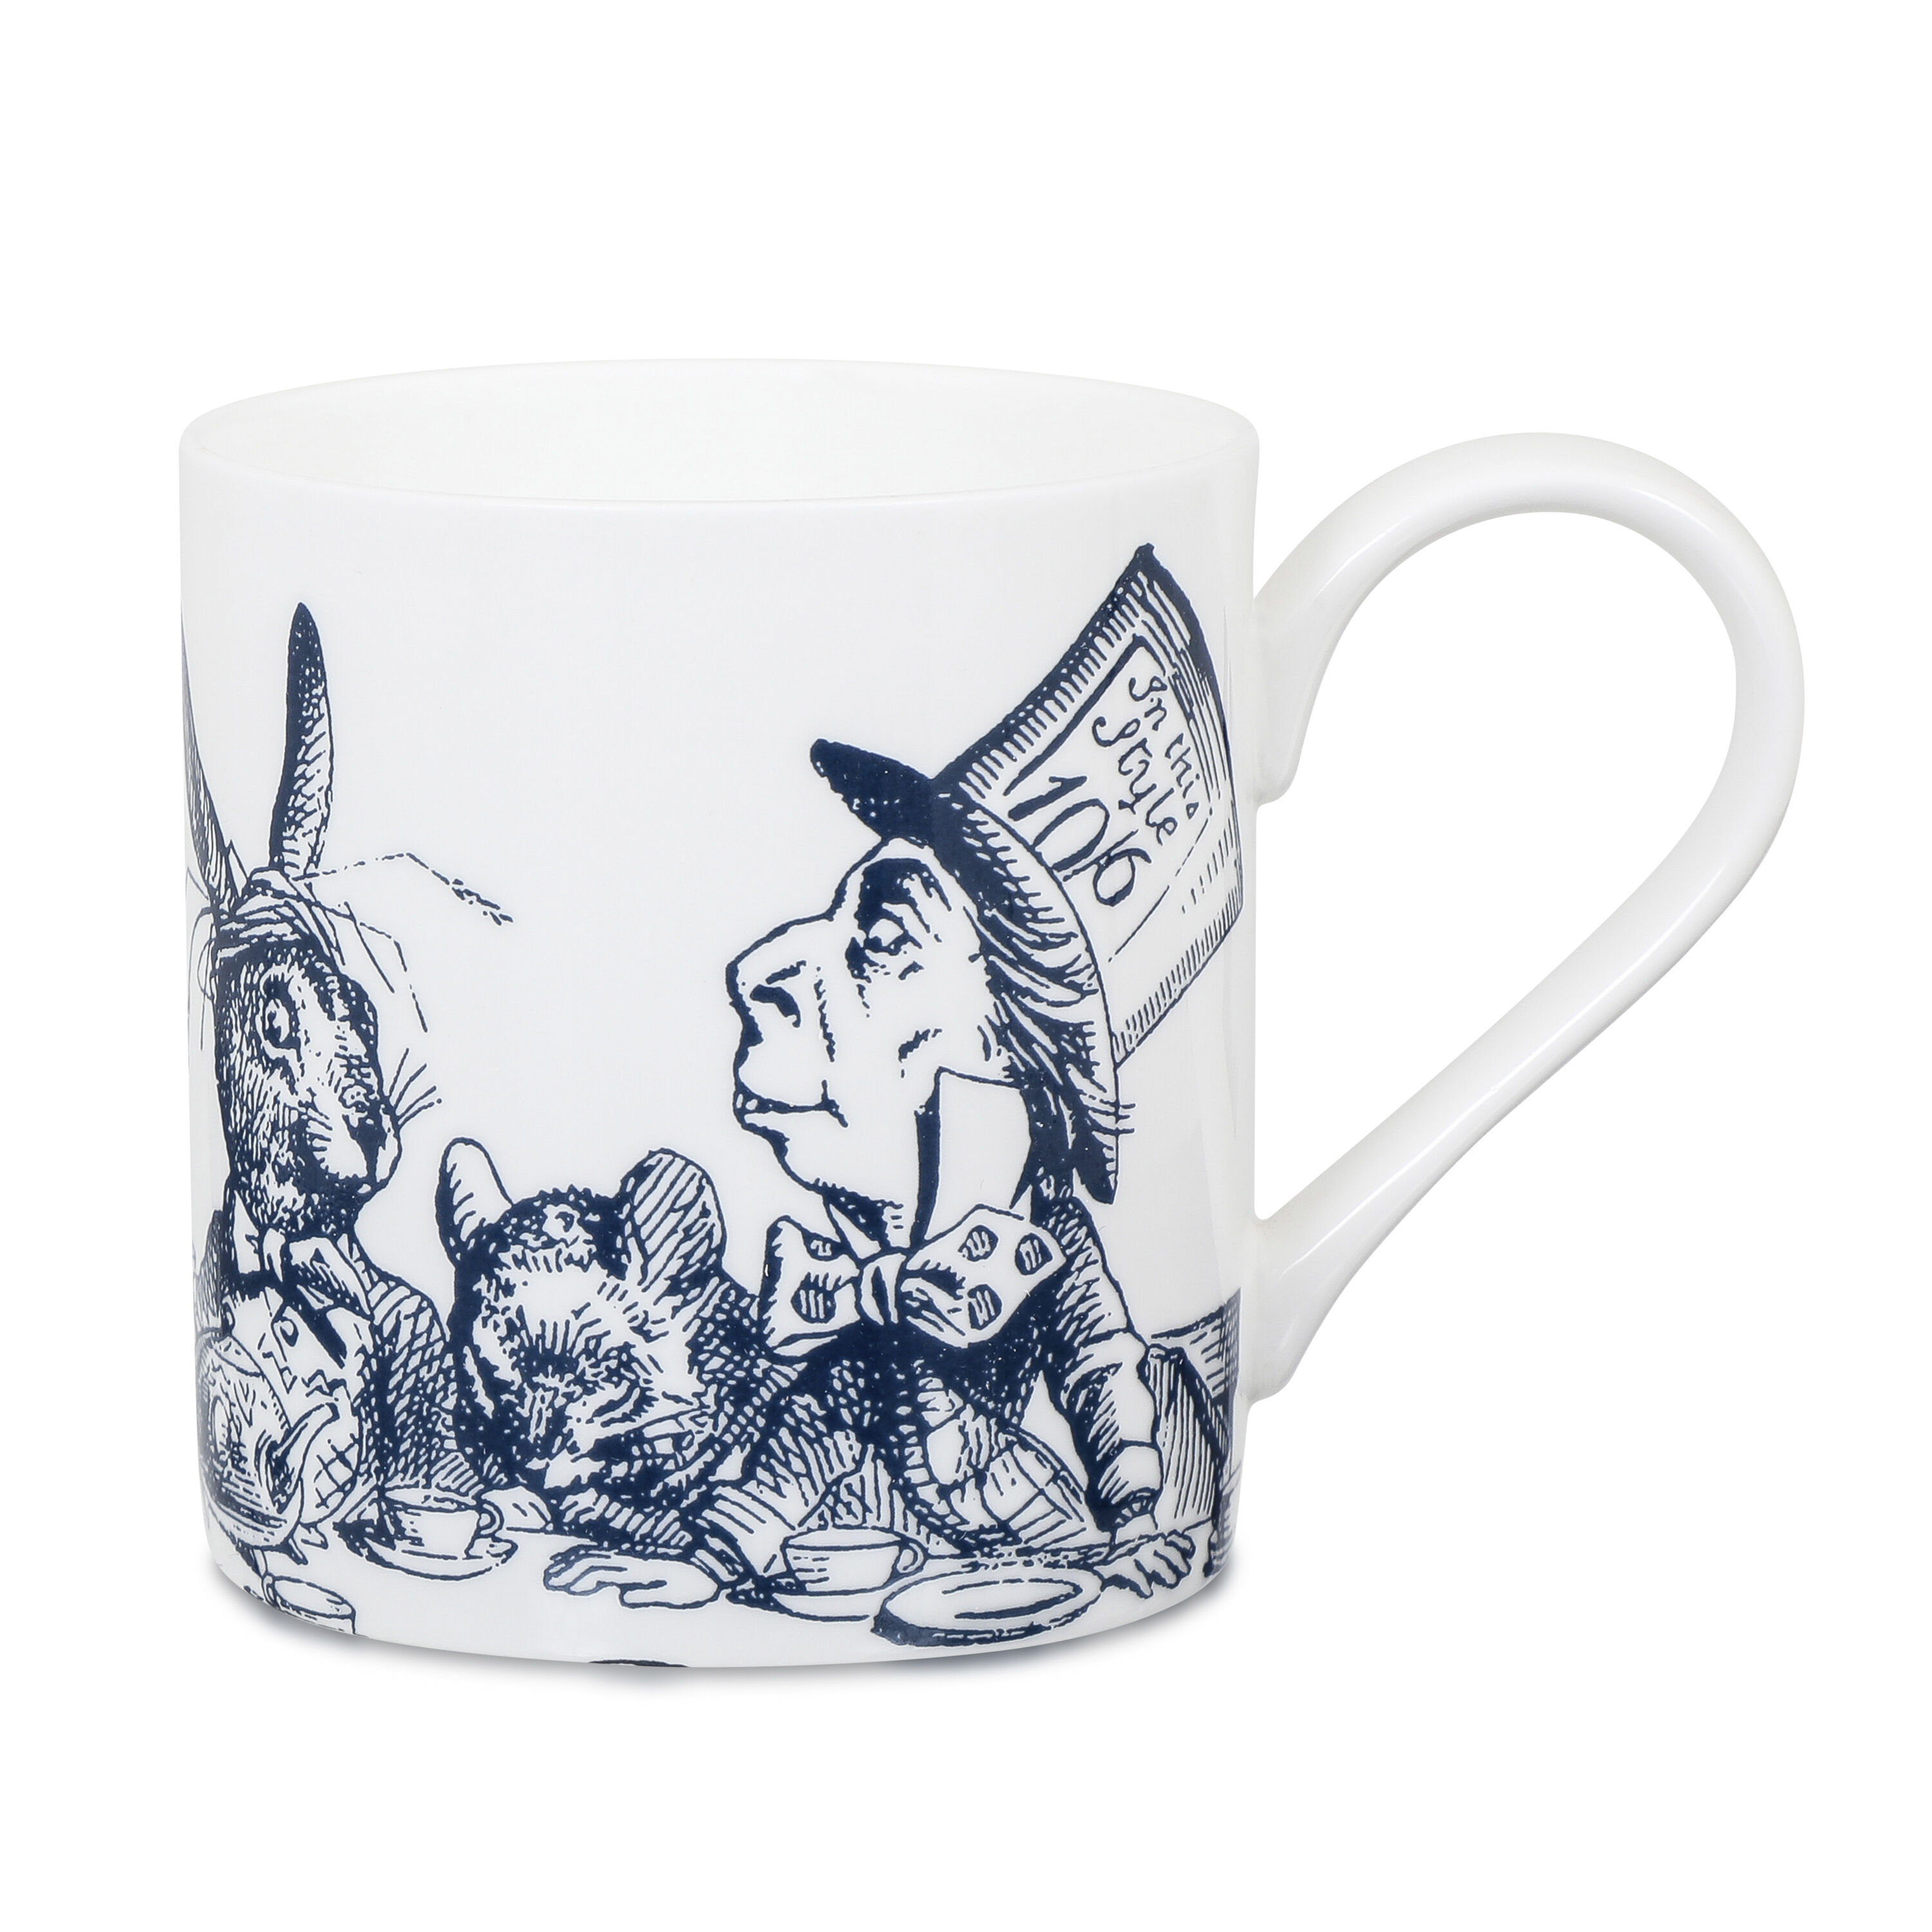 Tea And Whittard MugsCoffee Sets Of Chelsea 0w8OPnk